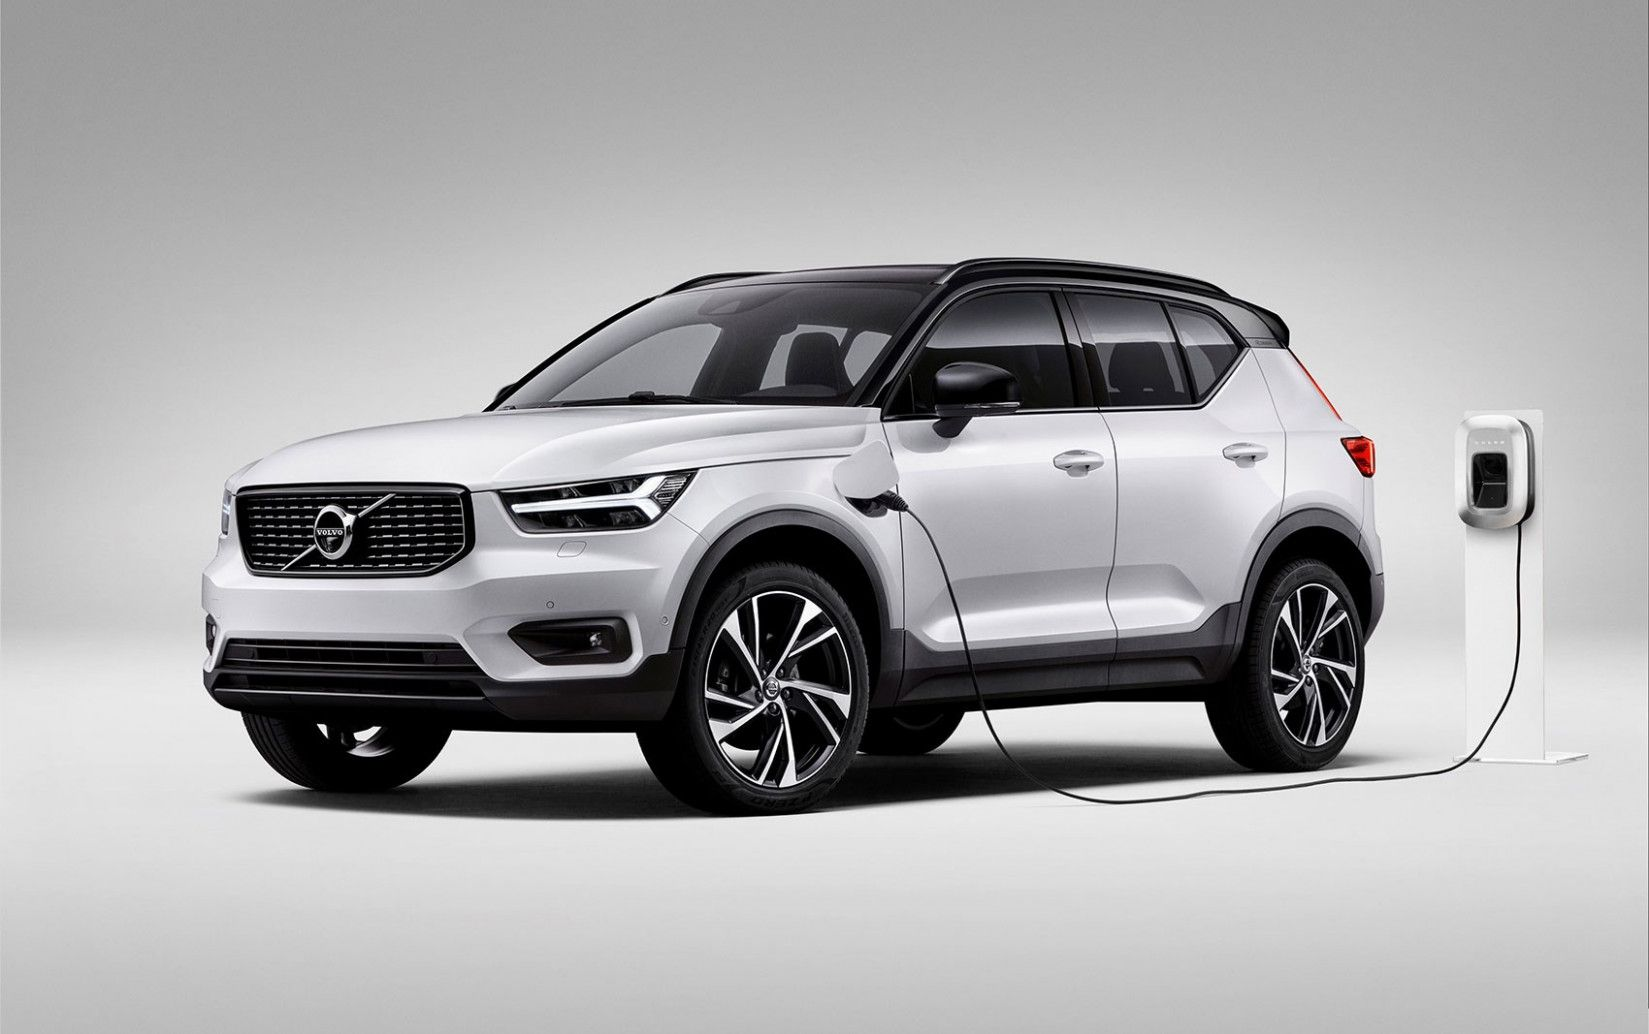 Volvo New Models 2020 Price And Release Date Volvo All Electric Cars Hybrid Car